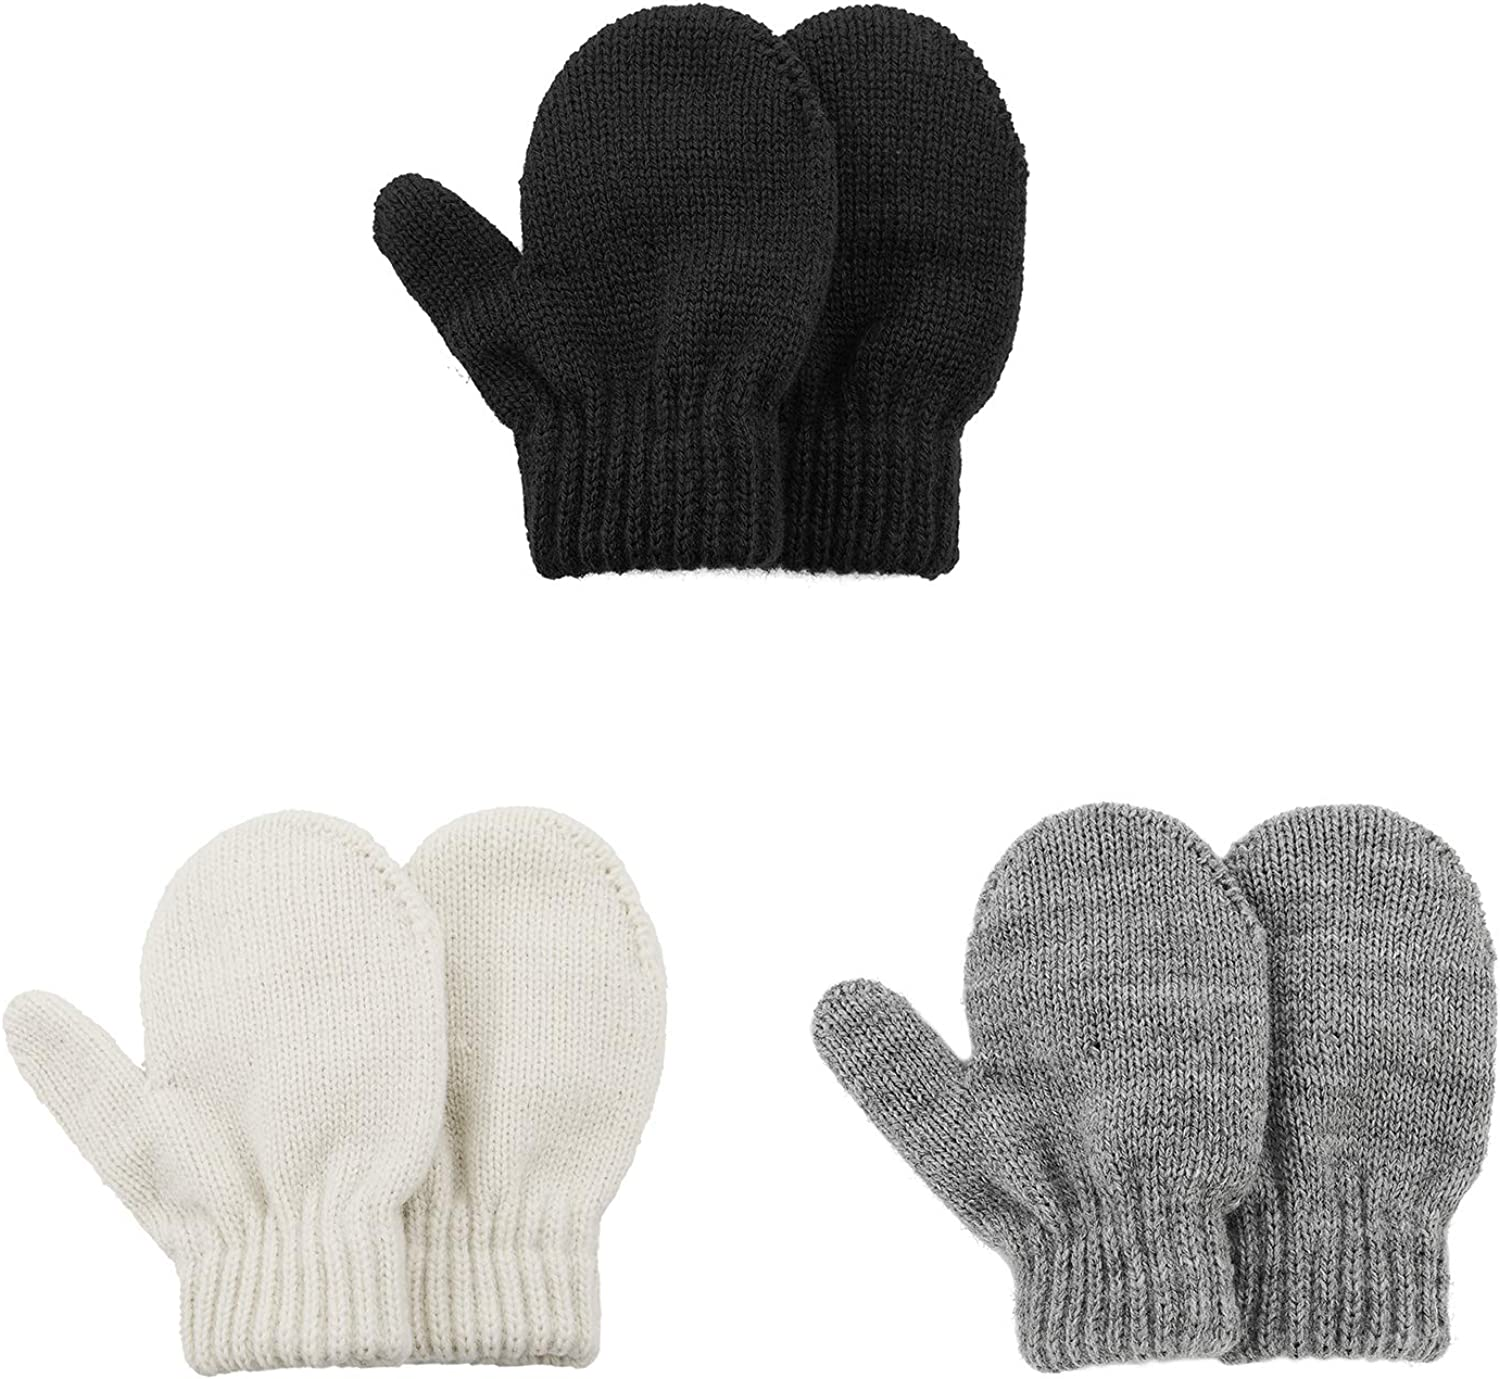 Kids Winter Toddler Mittens Multicolor Soft Knitted Gloves Thick Cold Protection Mitten Color Set 1